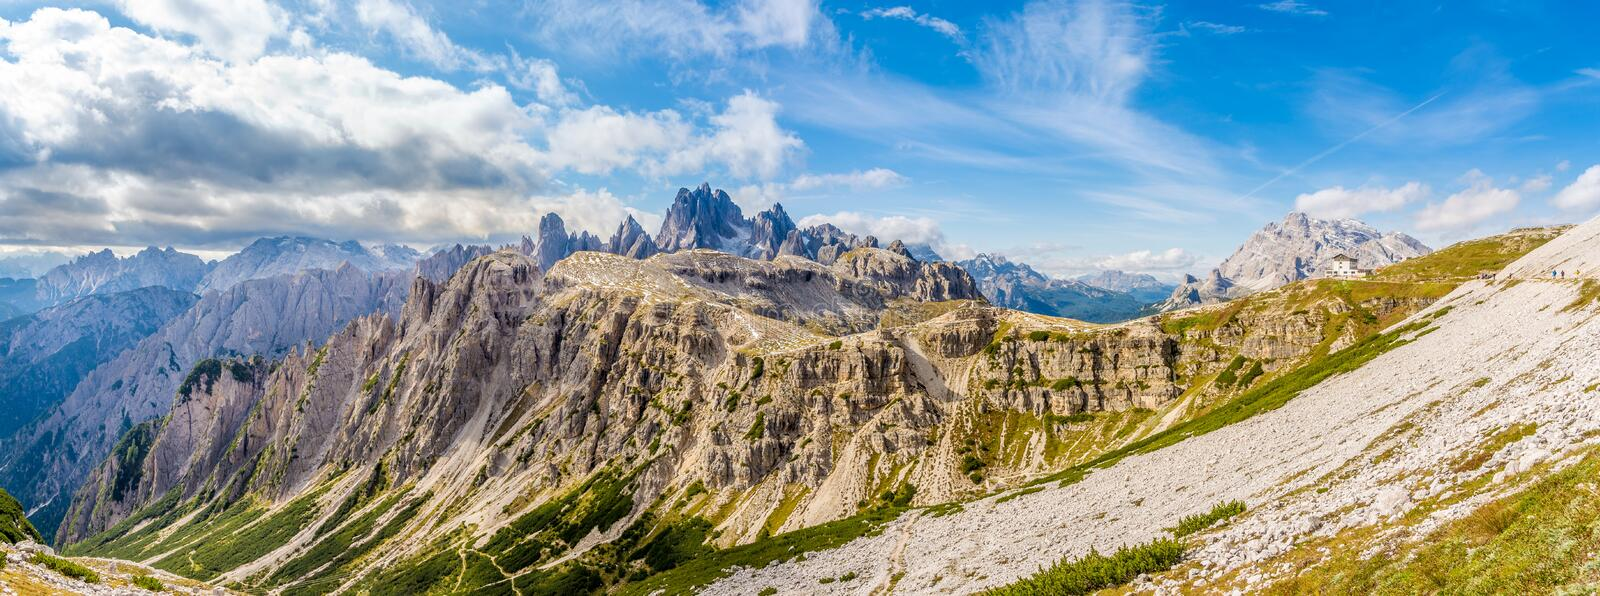 Panoramic view from South side Tre Cime di Lavaredo in South Tirol of Dolomites - Italy stock image